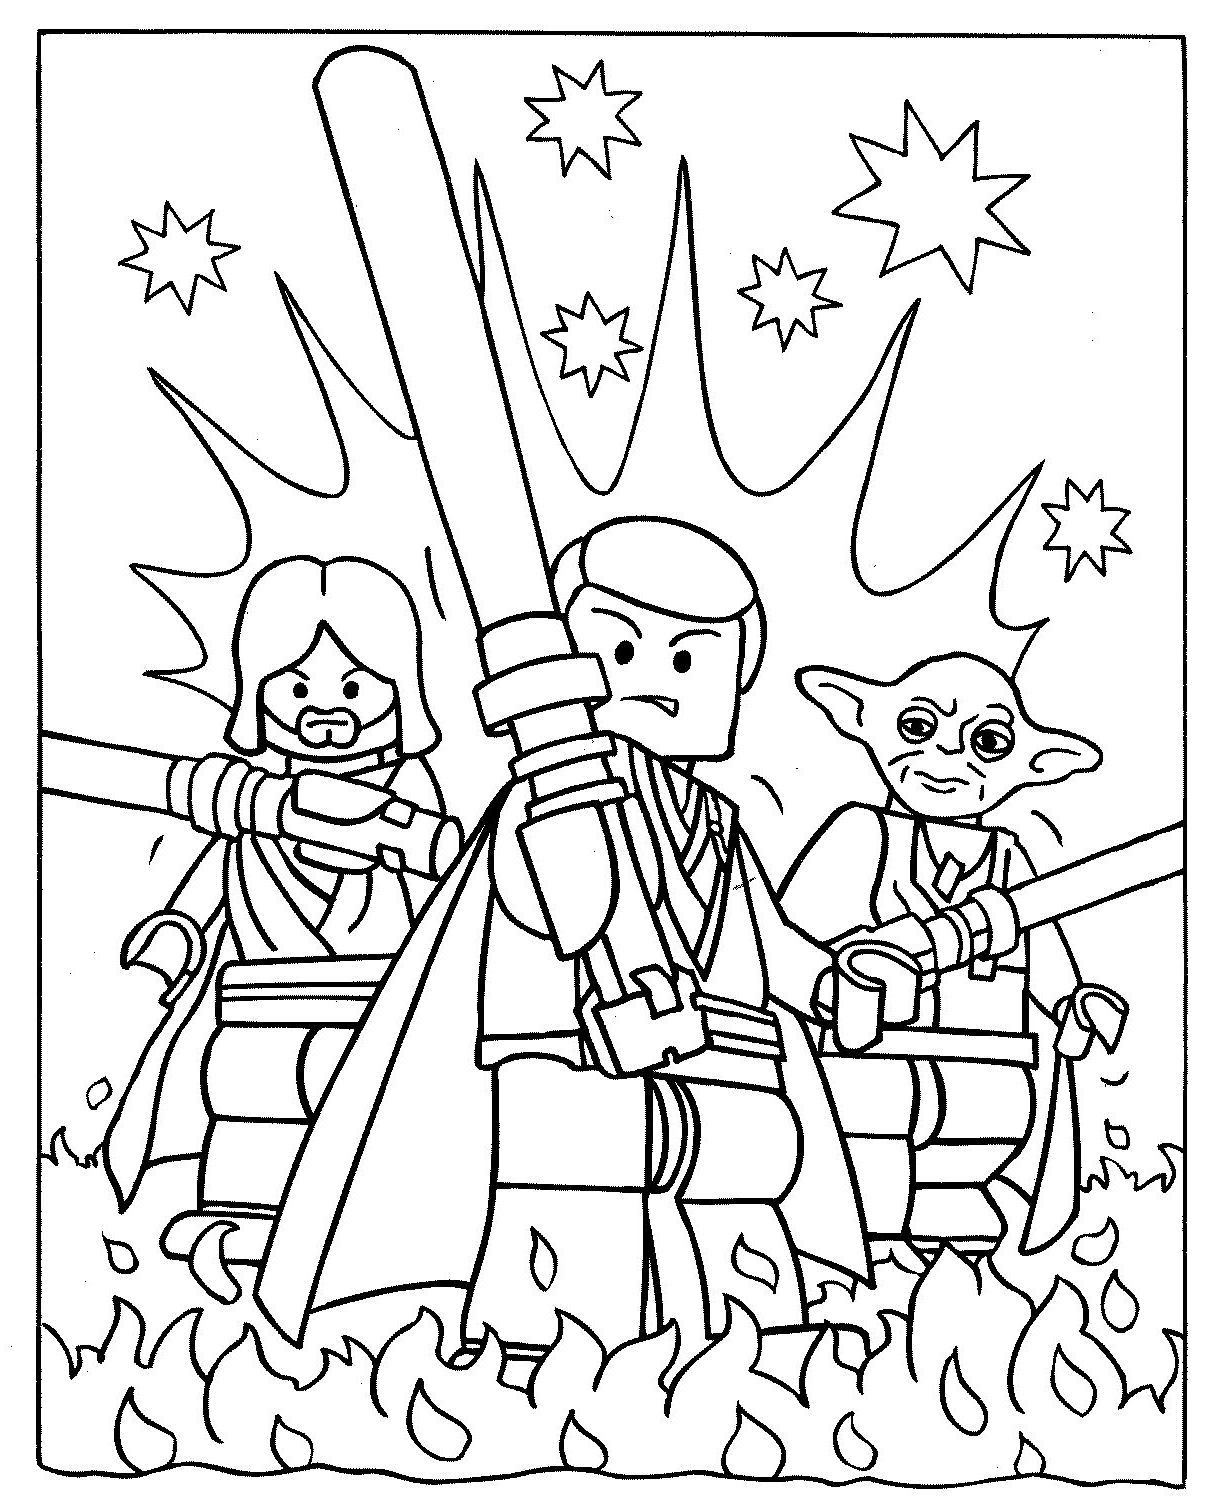 Lego Princess Leia Coloring Pages Awesome Star Wars Coloring Pages